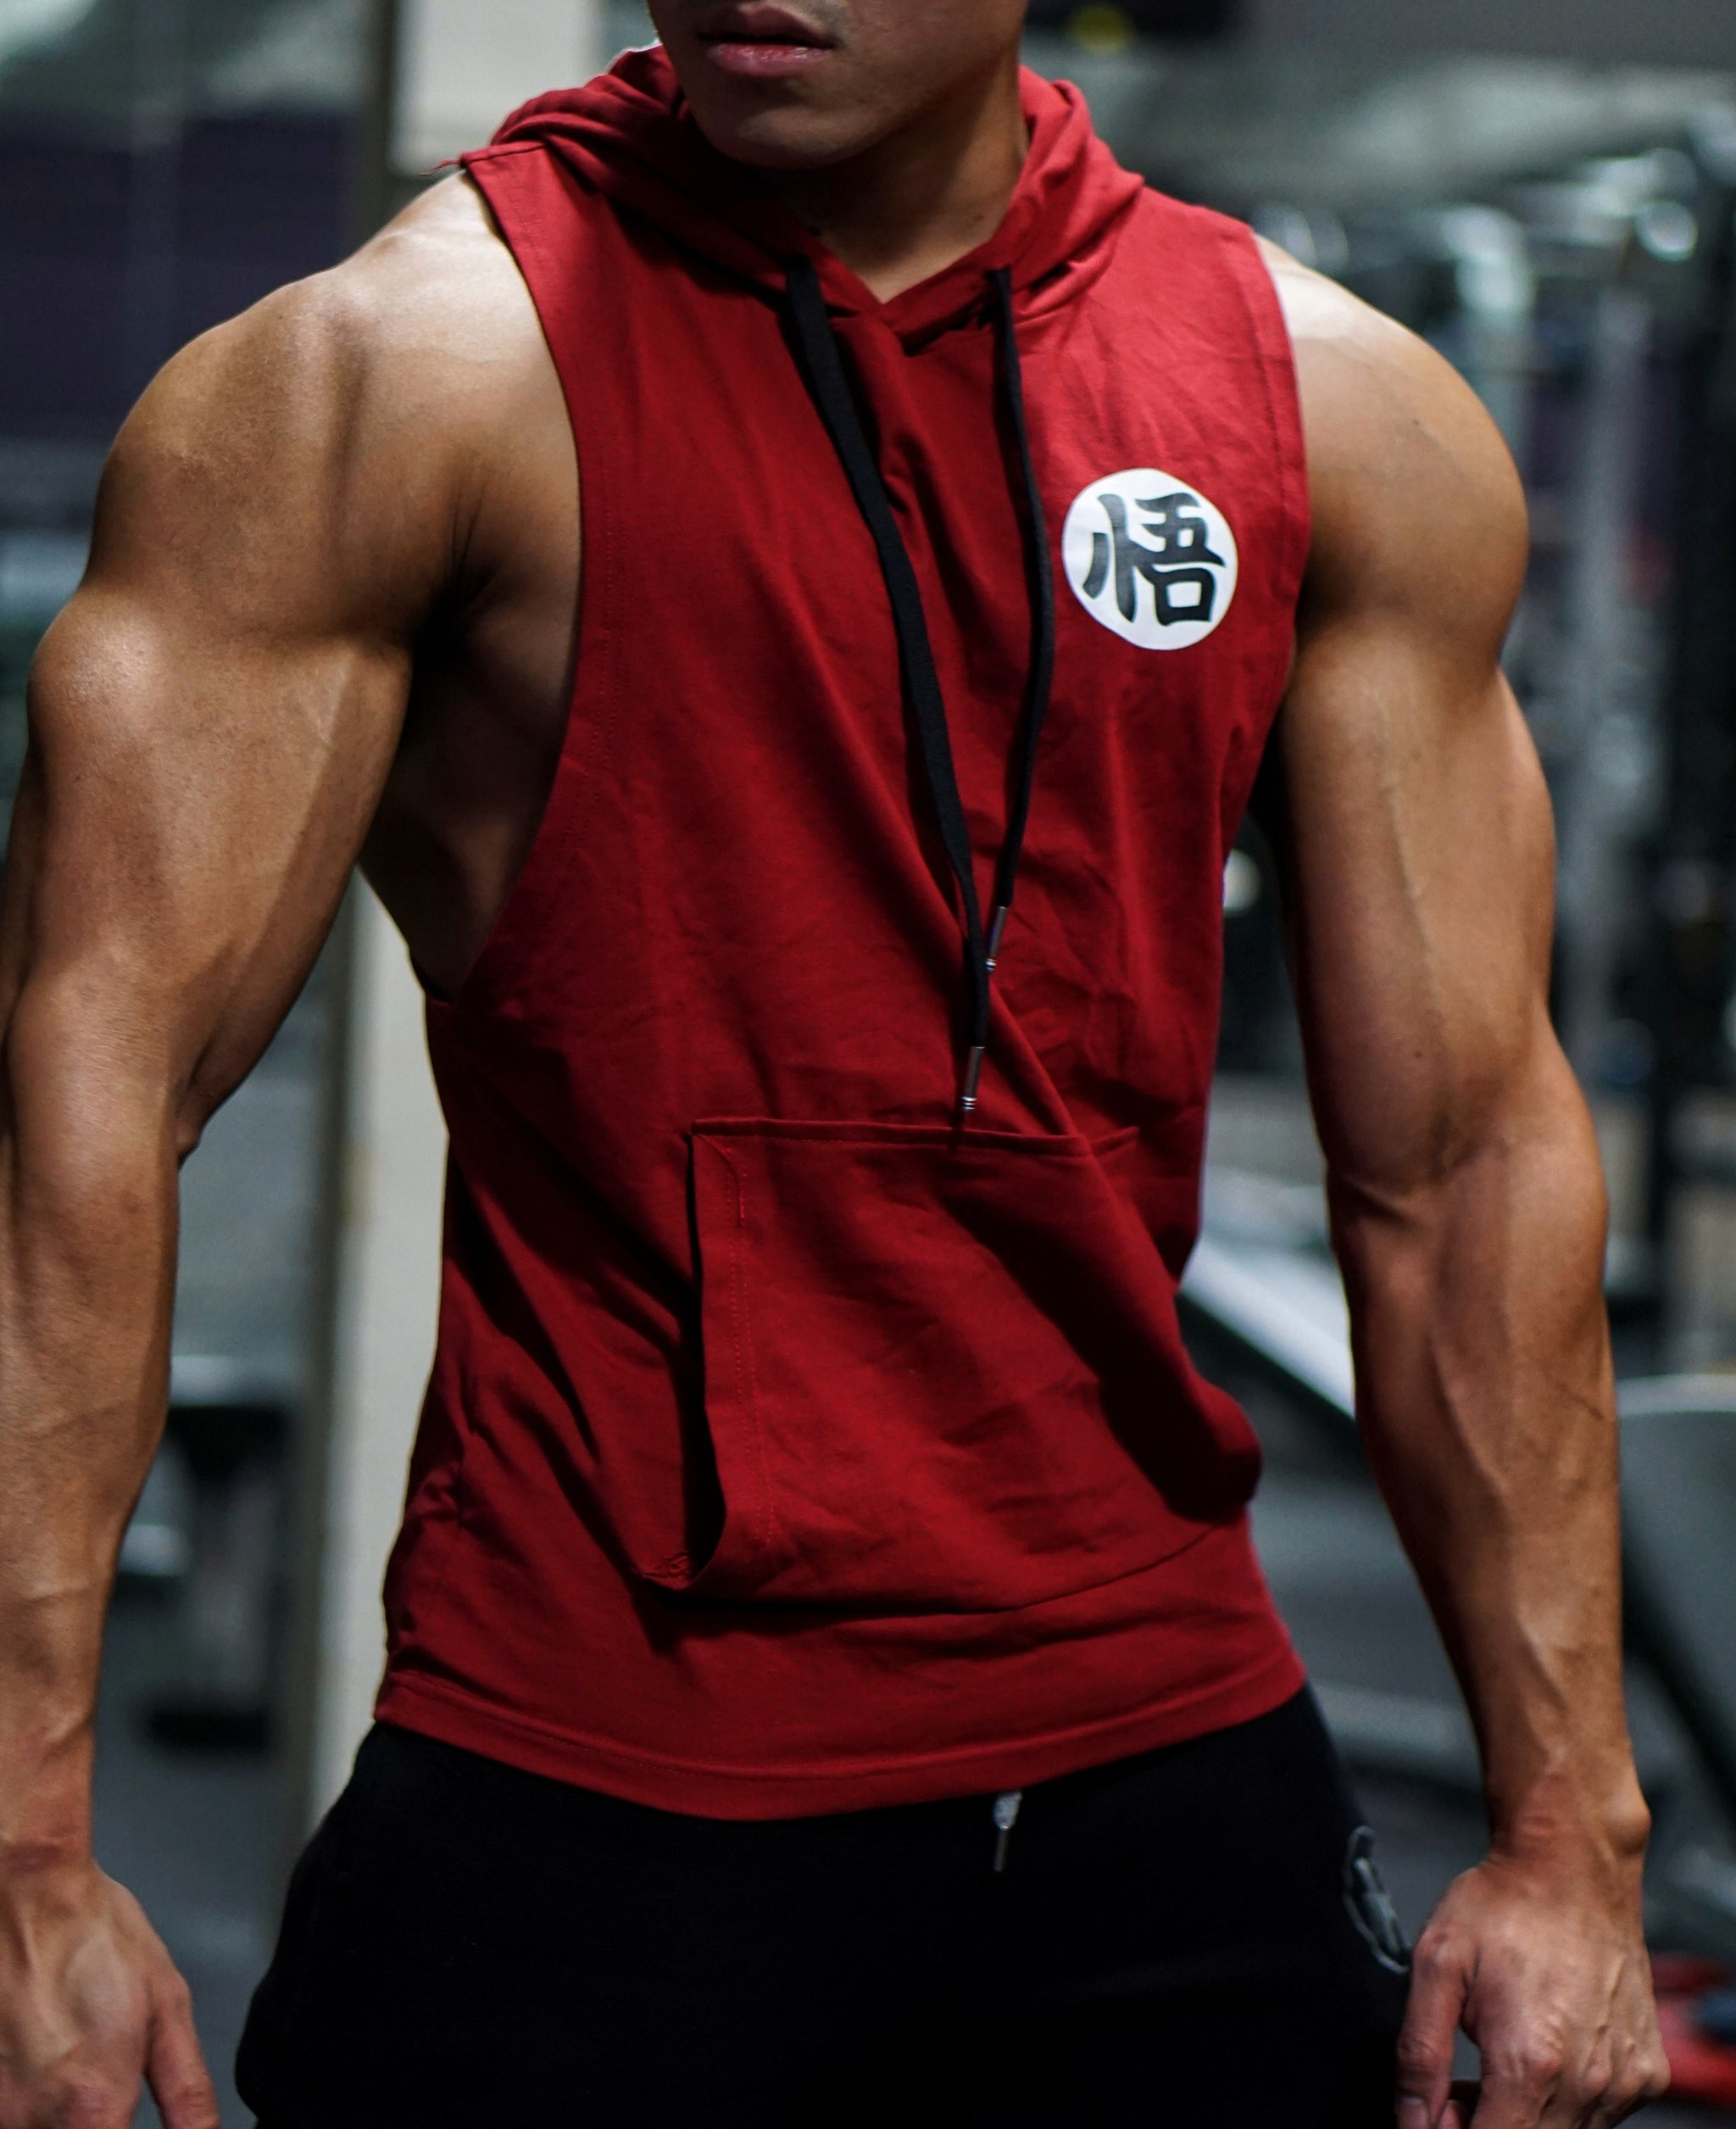 V2.0 Low Cut 'Ascension' Performance Sleeveless Hoodie - Blood Red